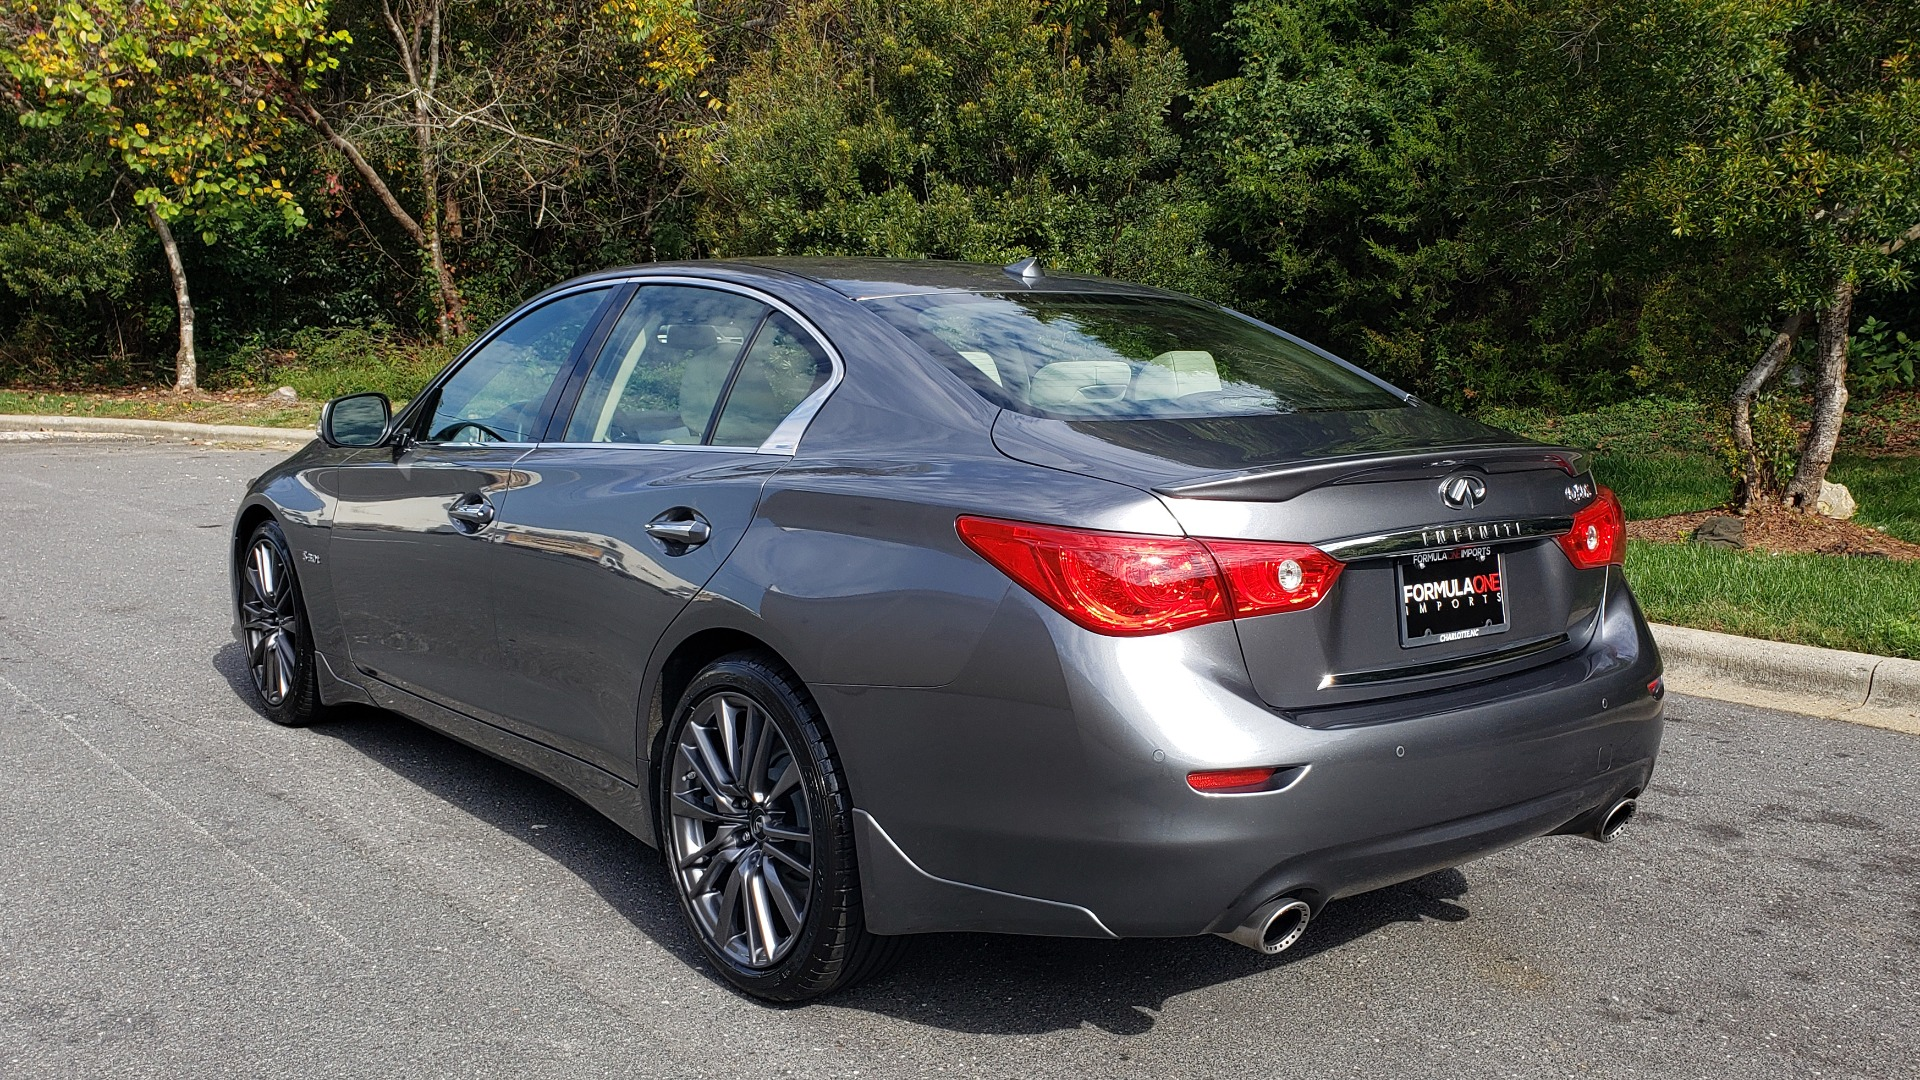 Used 2016 INFINITI Q50 3.0T RED SPORT 400 / NAV / PREM PLUS / BLIND SPOT / REARVIEW for sale $28,495 at Formula Imports in Charlotte NC 28227 3